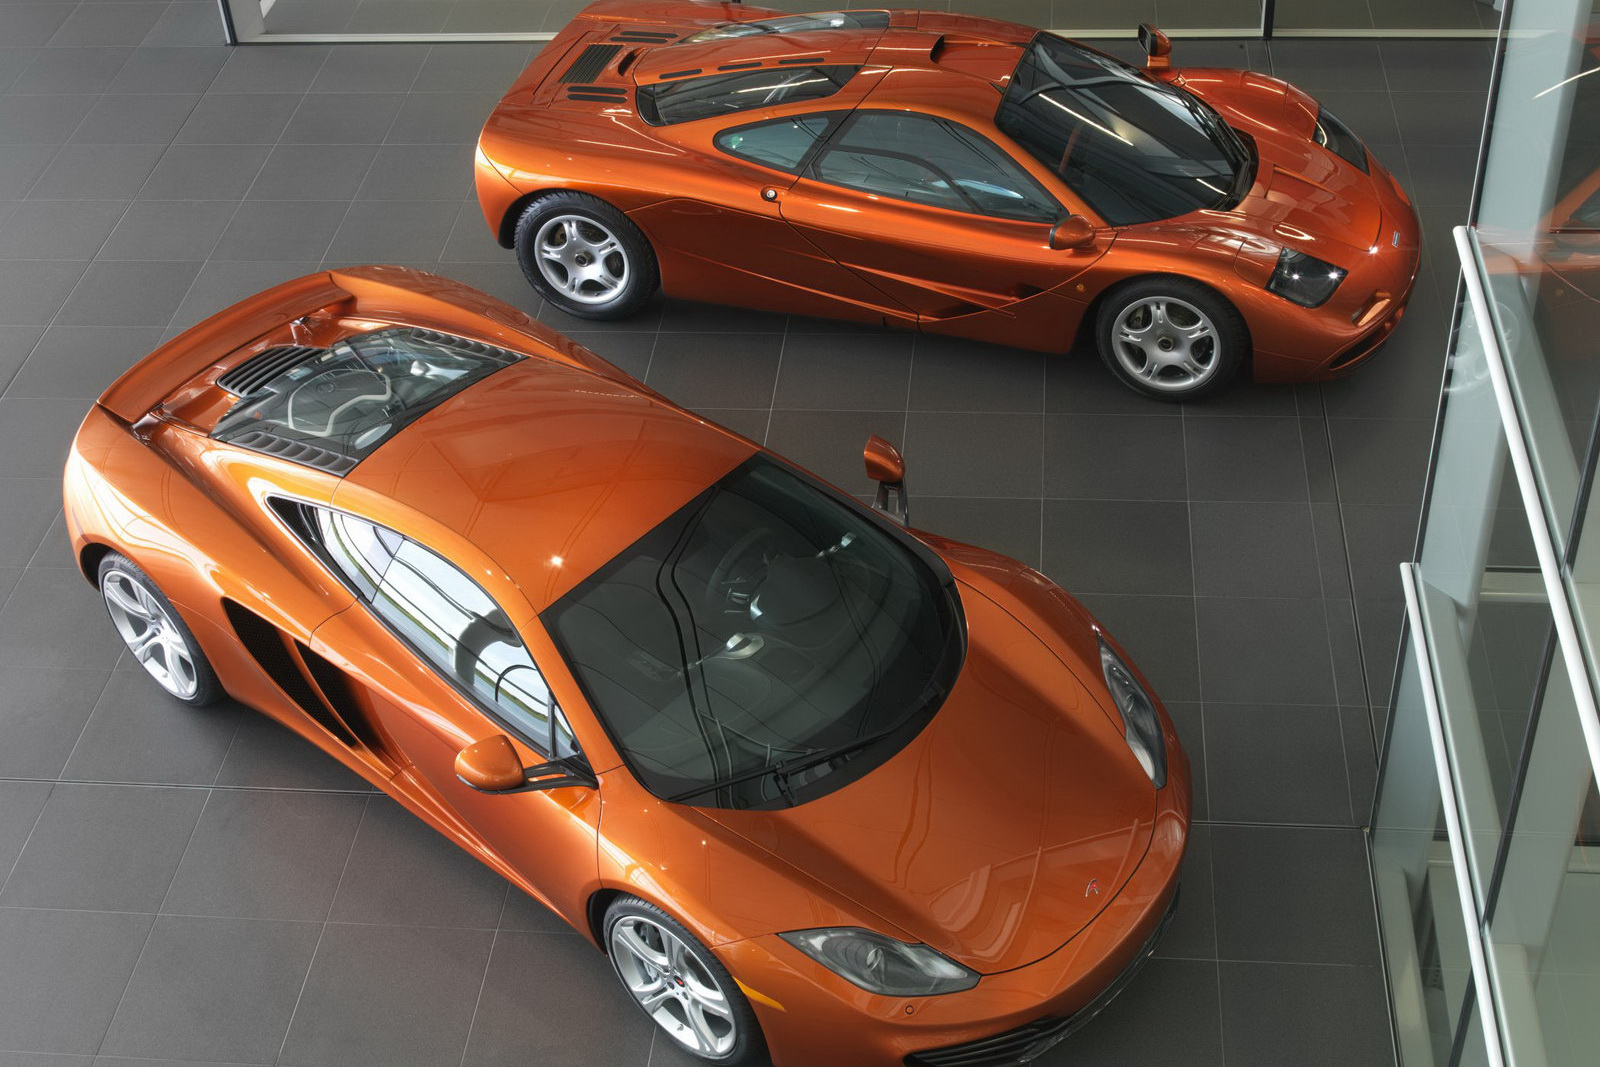 2012 McLaren Iconic F1 Successor 4 The Successor Will Come – 2012 McLaren Iconic F1 Successor!